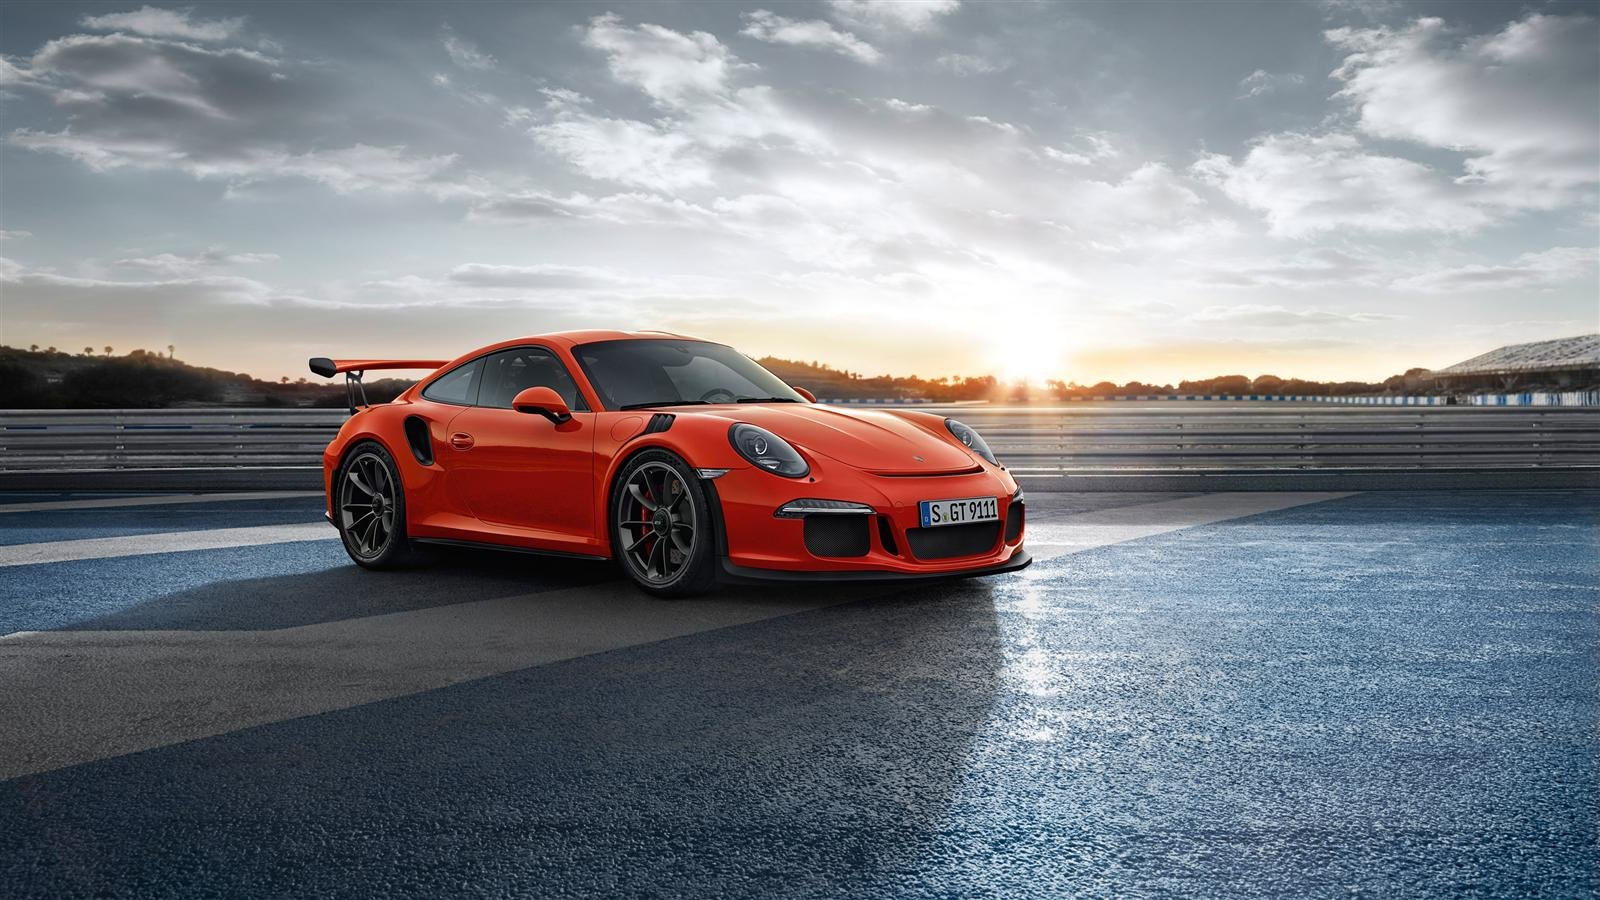 Best Porsche 911 GT3 background ID125838 for High Resolution hd 1600x900